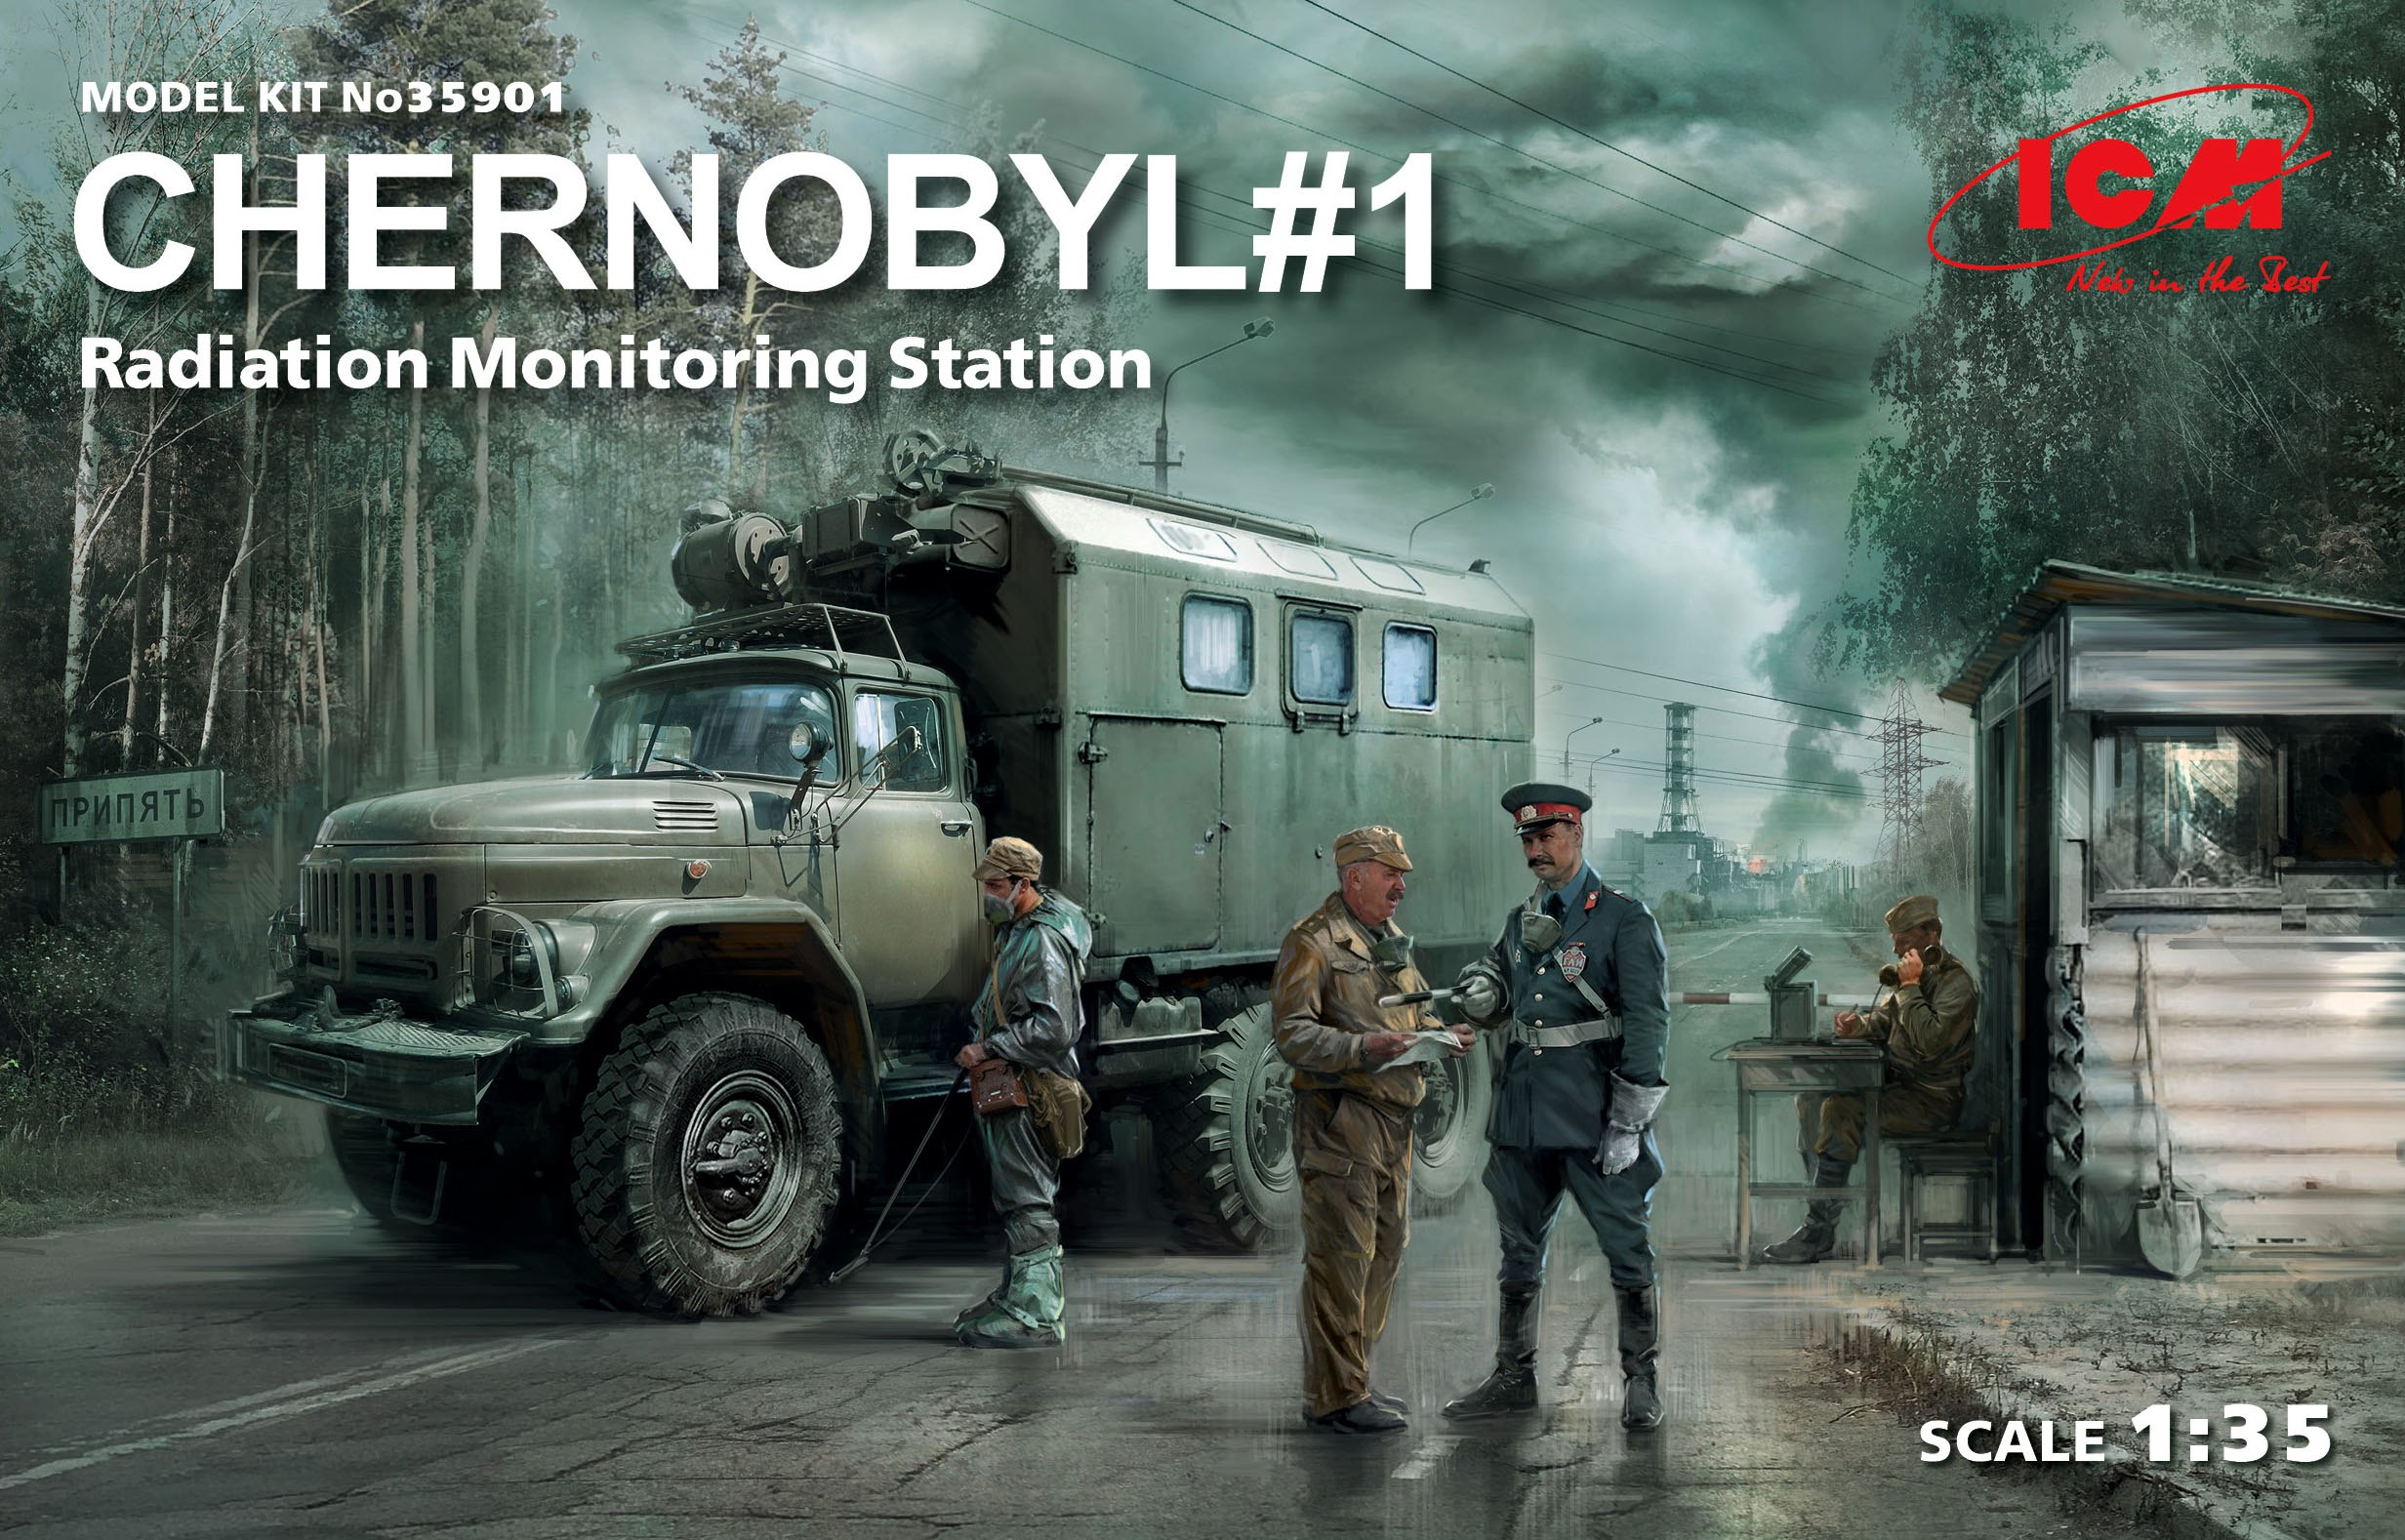 ICM Chernobyl#1. Radiation Monitoring Station (ZiL-131KShM truck & 5 figures & diorama base with background)